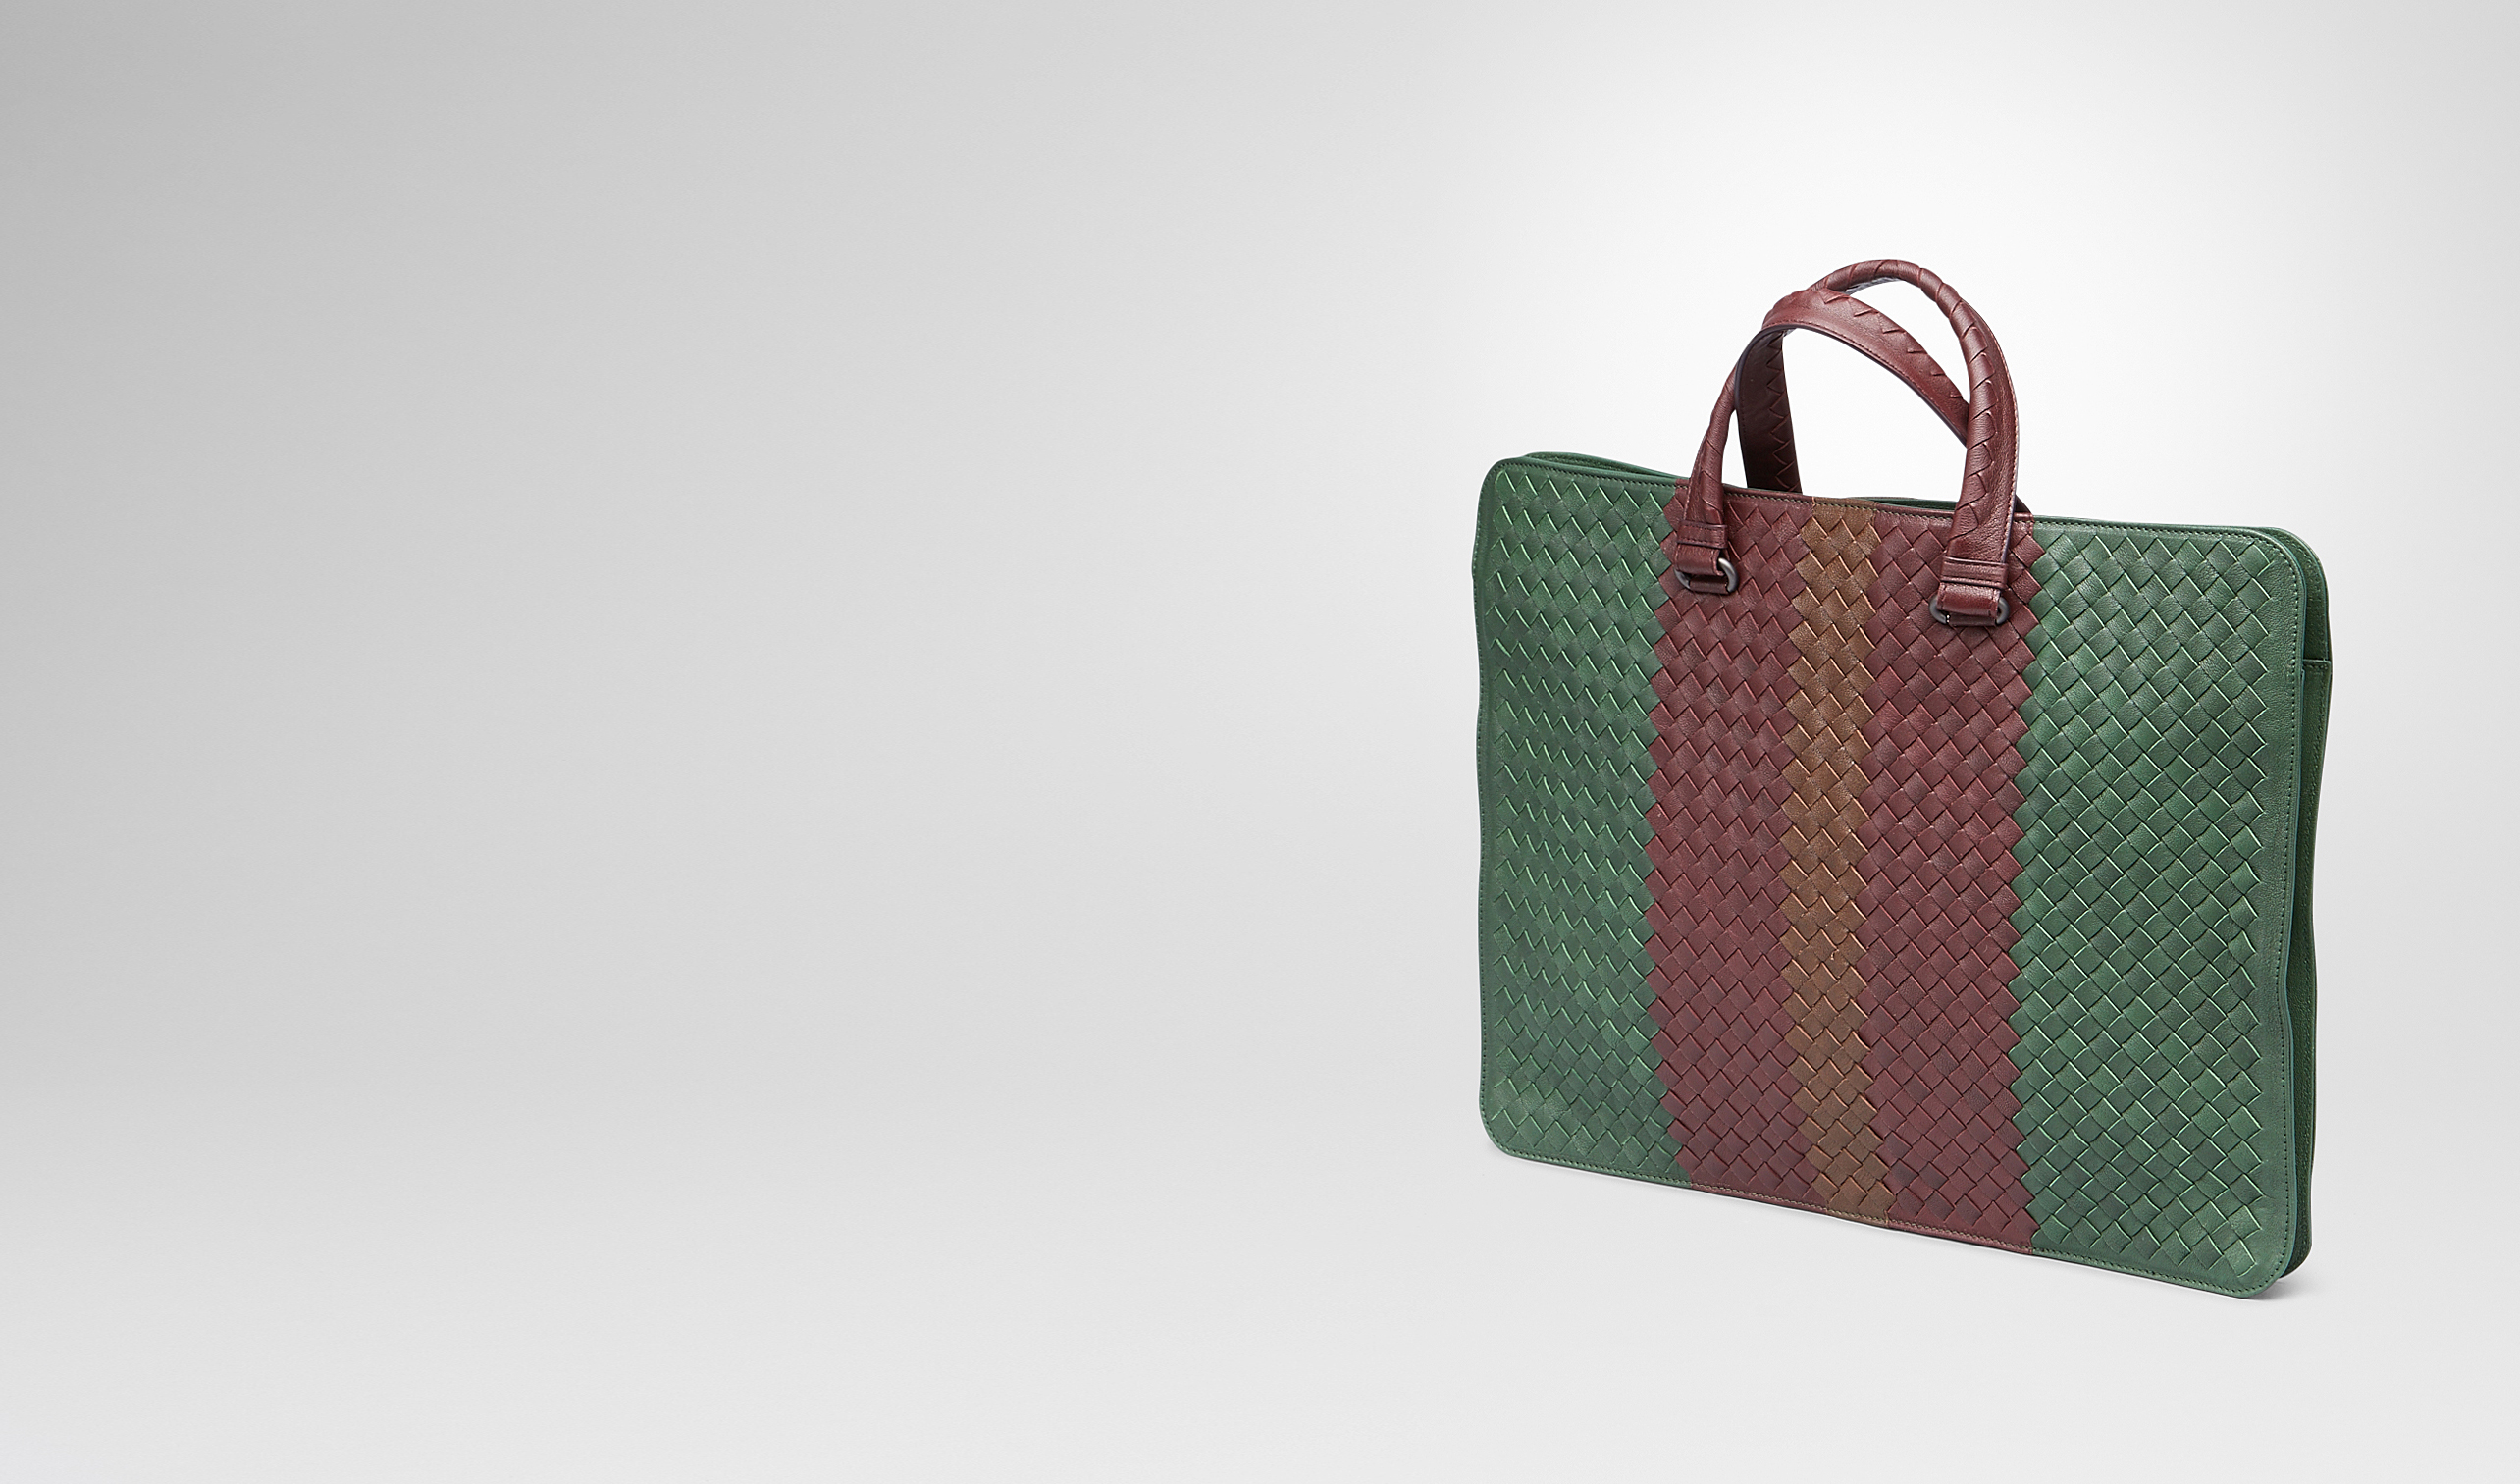 BOTTEGA VENETA Business Tasche U AKTENTASCHE AUS CLUB FUMÉ INTRECCIATO EMERALD GREEN, AUBERGINE UND EDOARDO pl